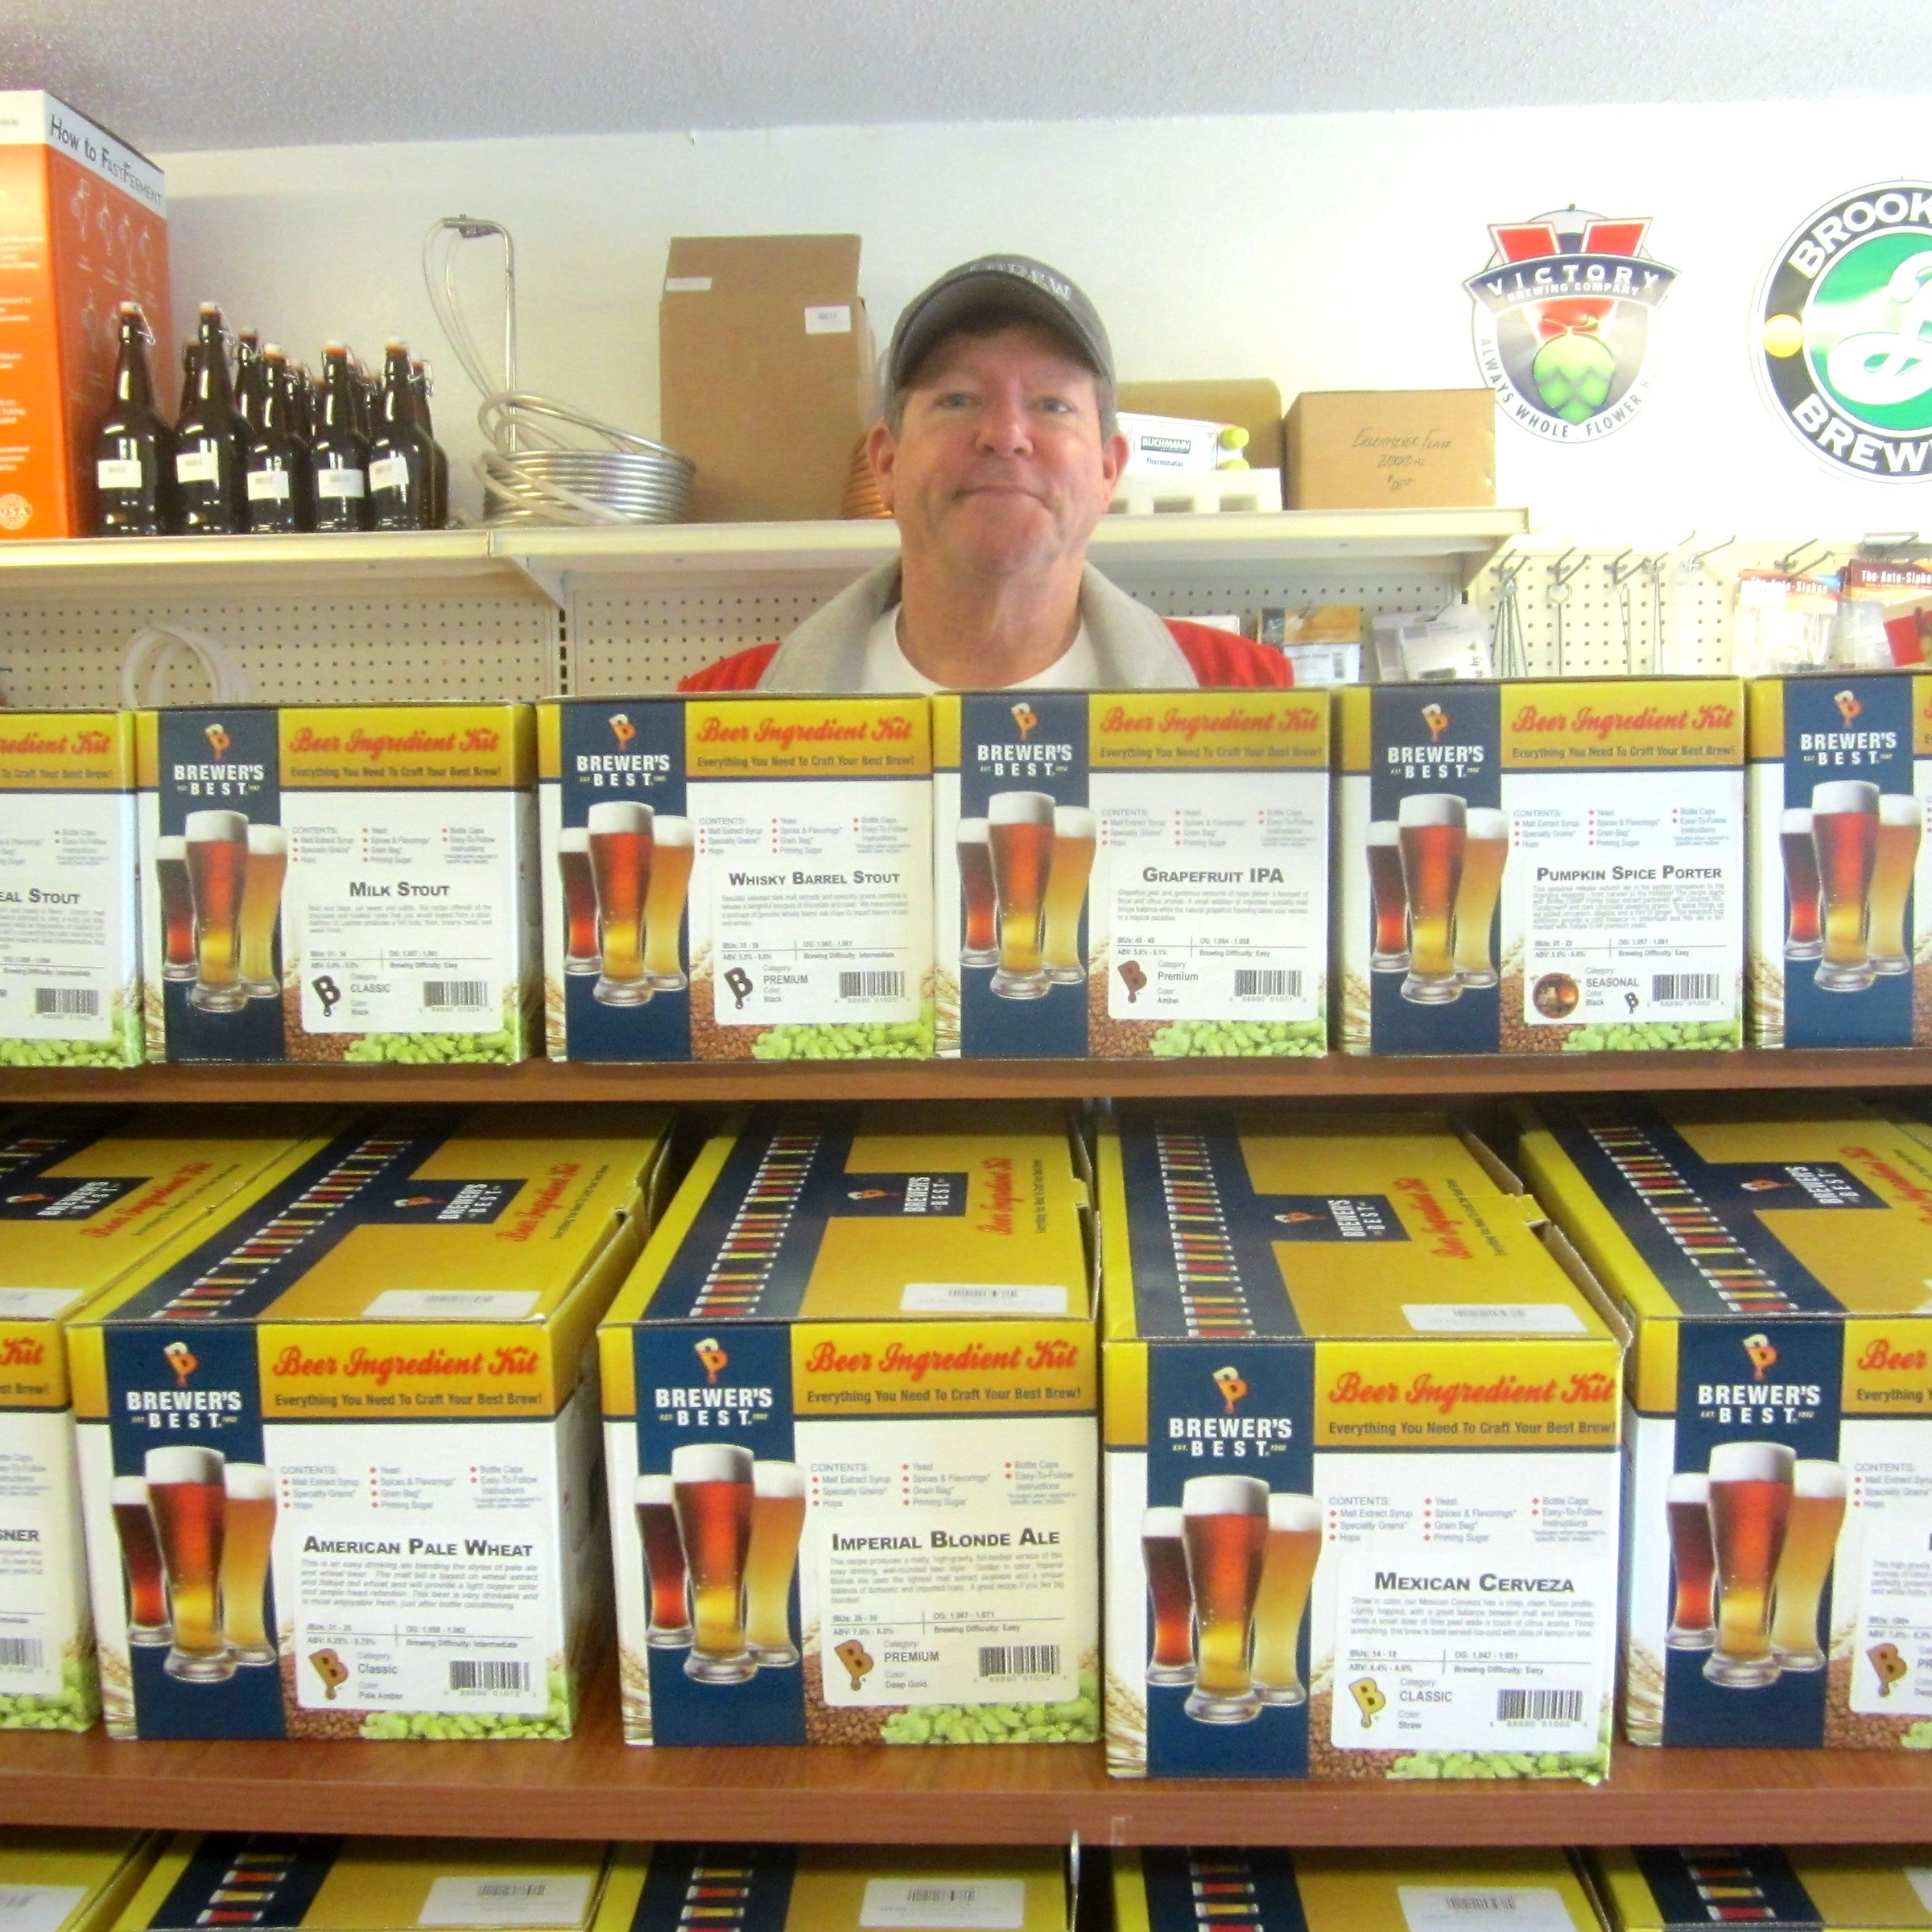 Homebrewing passion for Brews Brothers - Valley Business Report